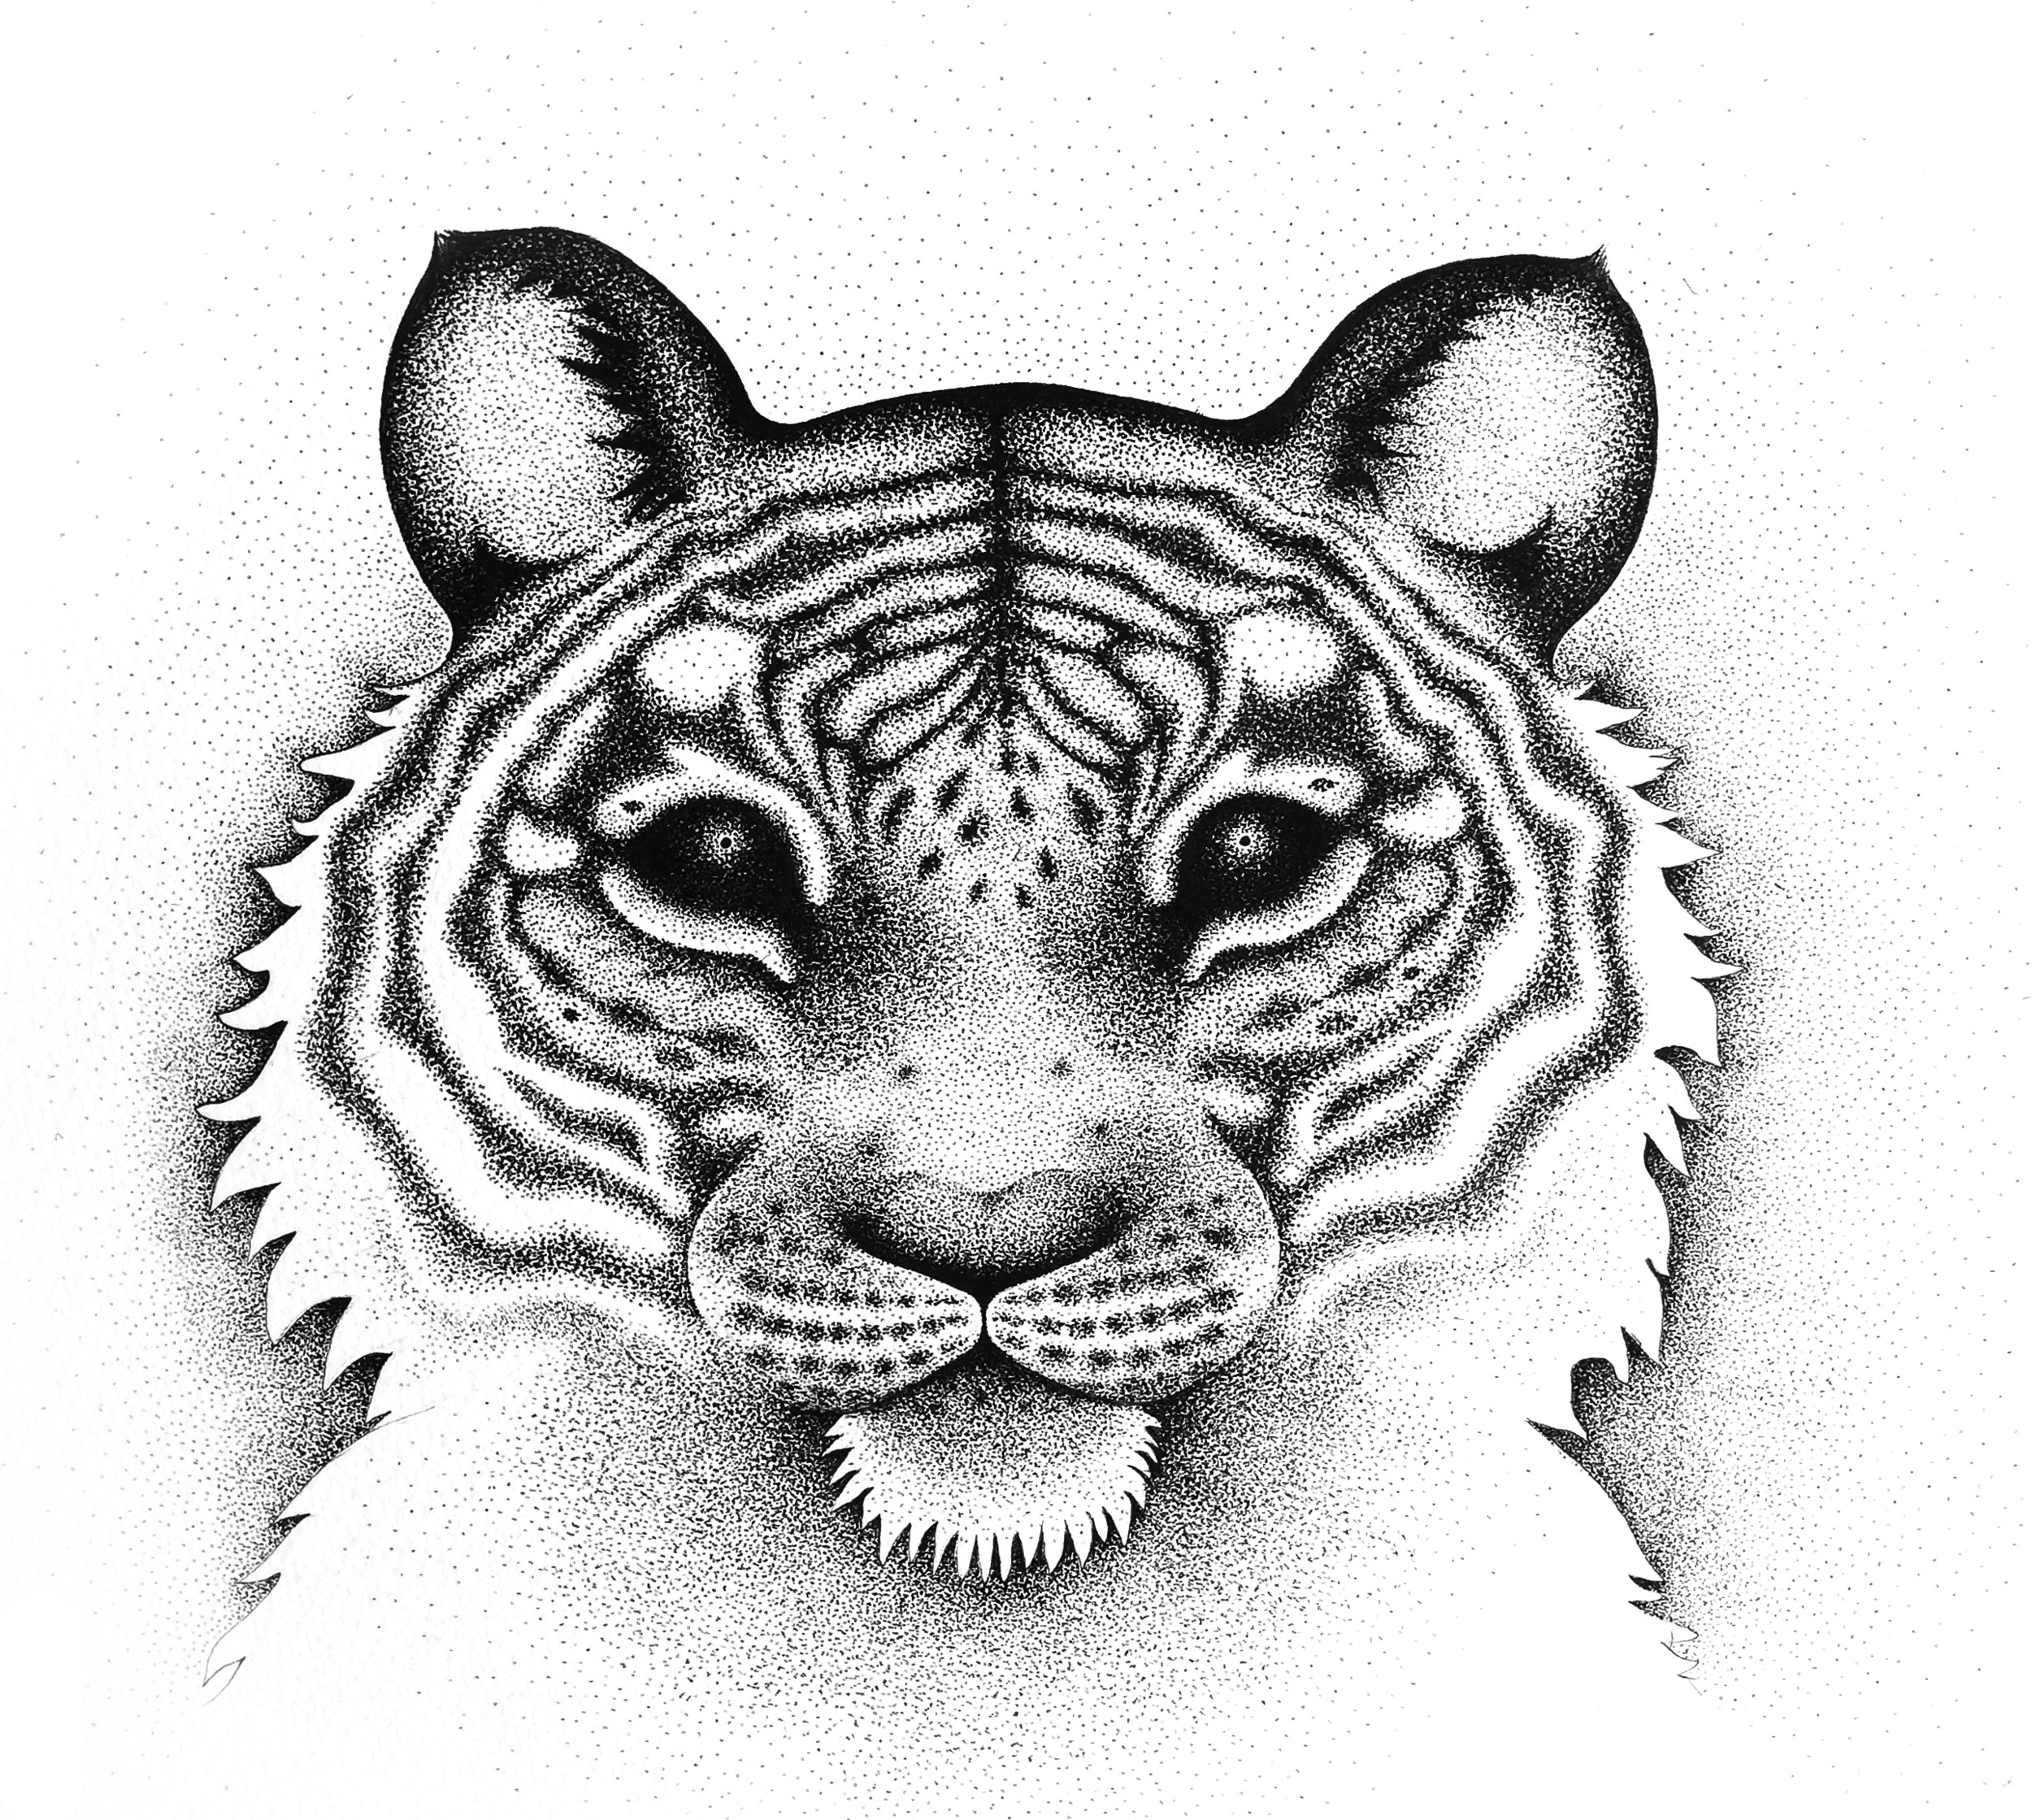 Black and white Tiger illustration, originally drawn with a fine liner pencil. Printed on fine art Hahnemühle German Etching 310 g paper. Signed. Available in sizes 30x30cm and 40x40cm.  Contact  me for purchase information.